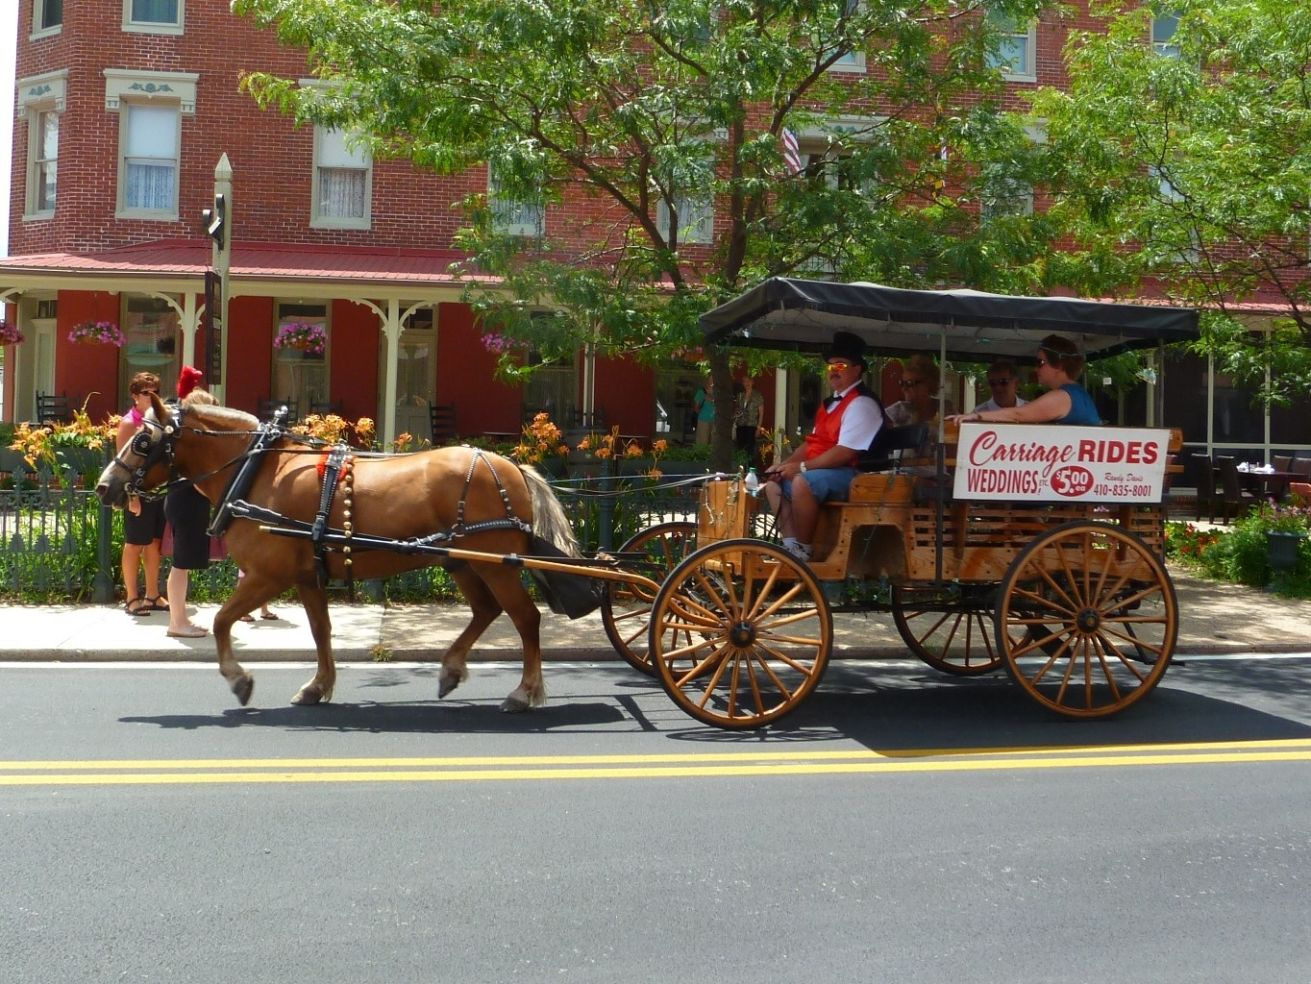 Berlin, Maryland offers horse and carriage rides